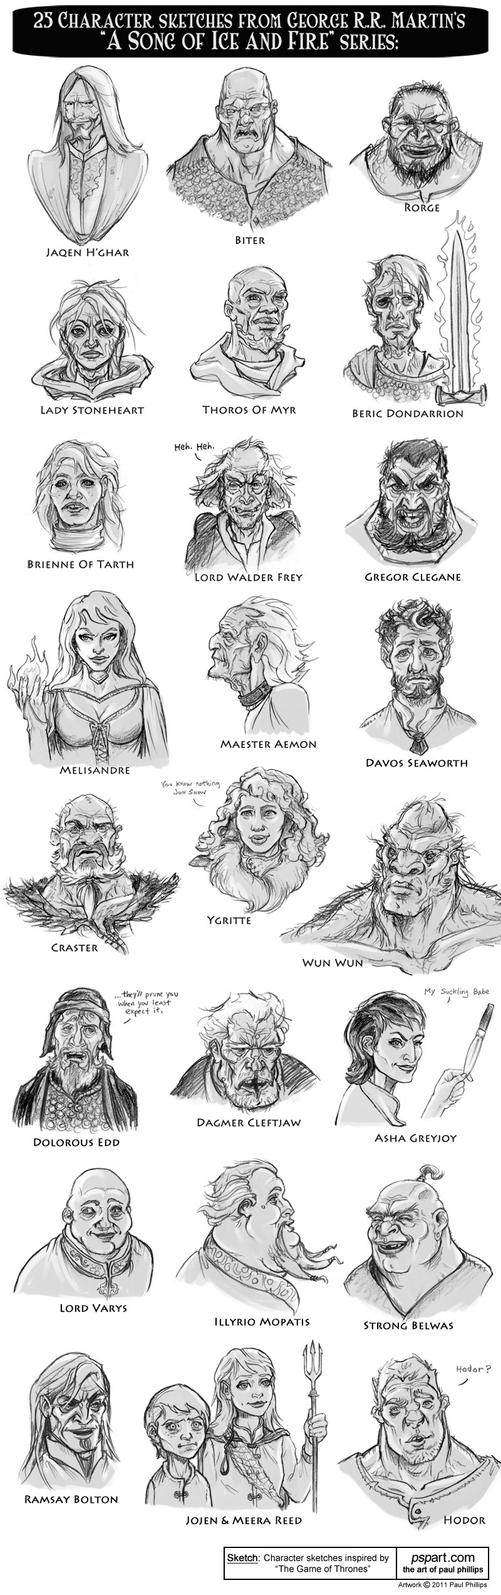 Game of Thrones Character Art by PaulPhillips